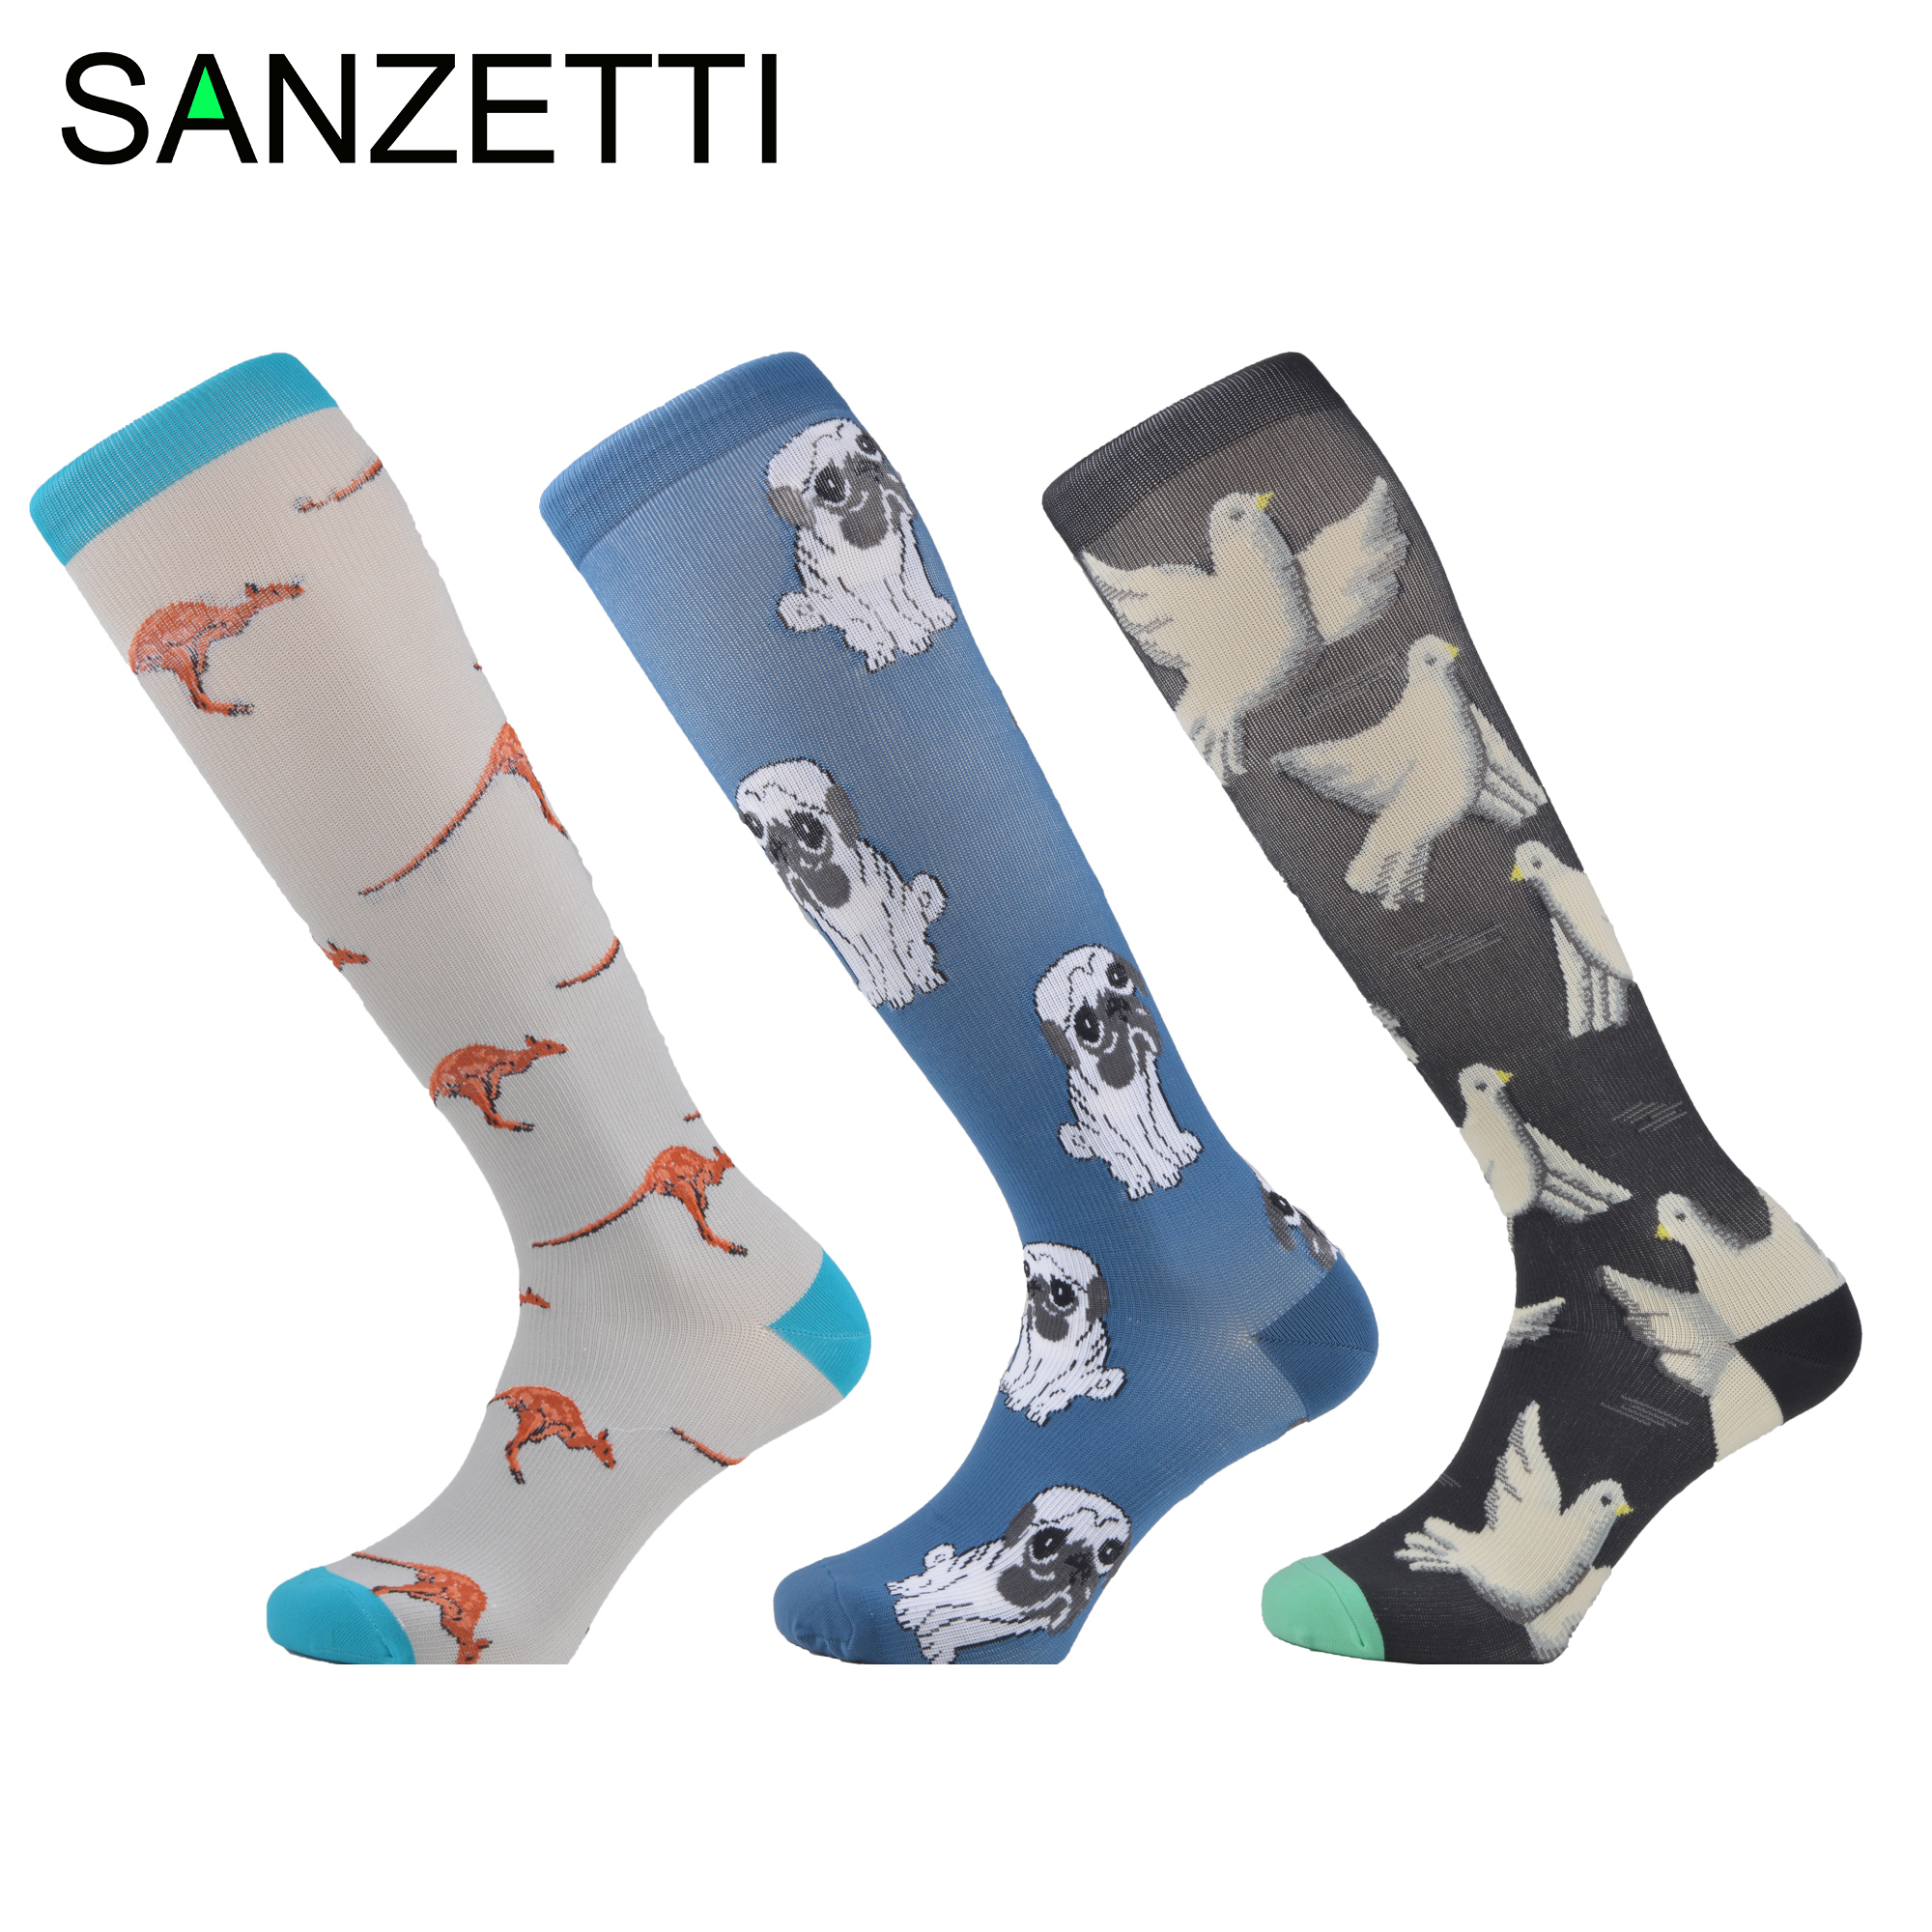 SANZETTI 3 Pairs/Lot Women Animal Leg Support Stretch Combed Cotton Compression Socks Below Knee Anti-Fatigue Long Happy Socks